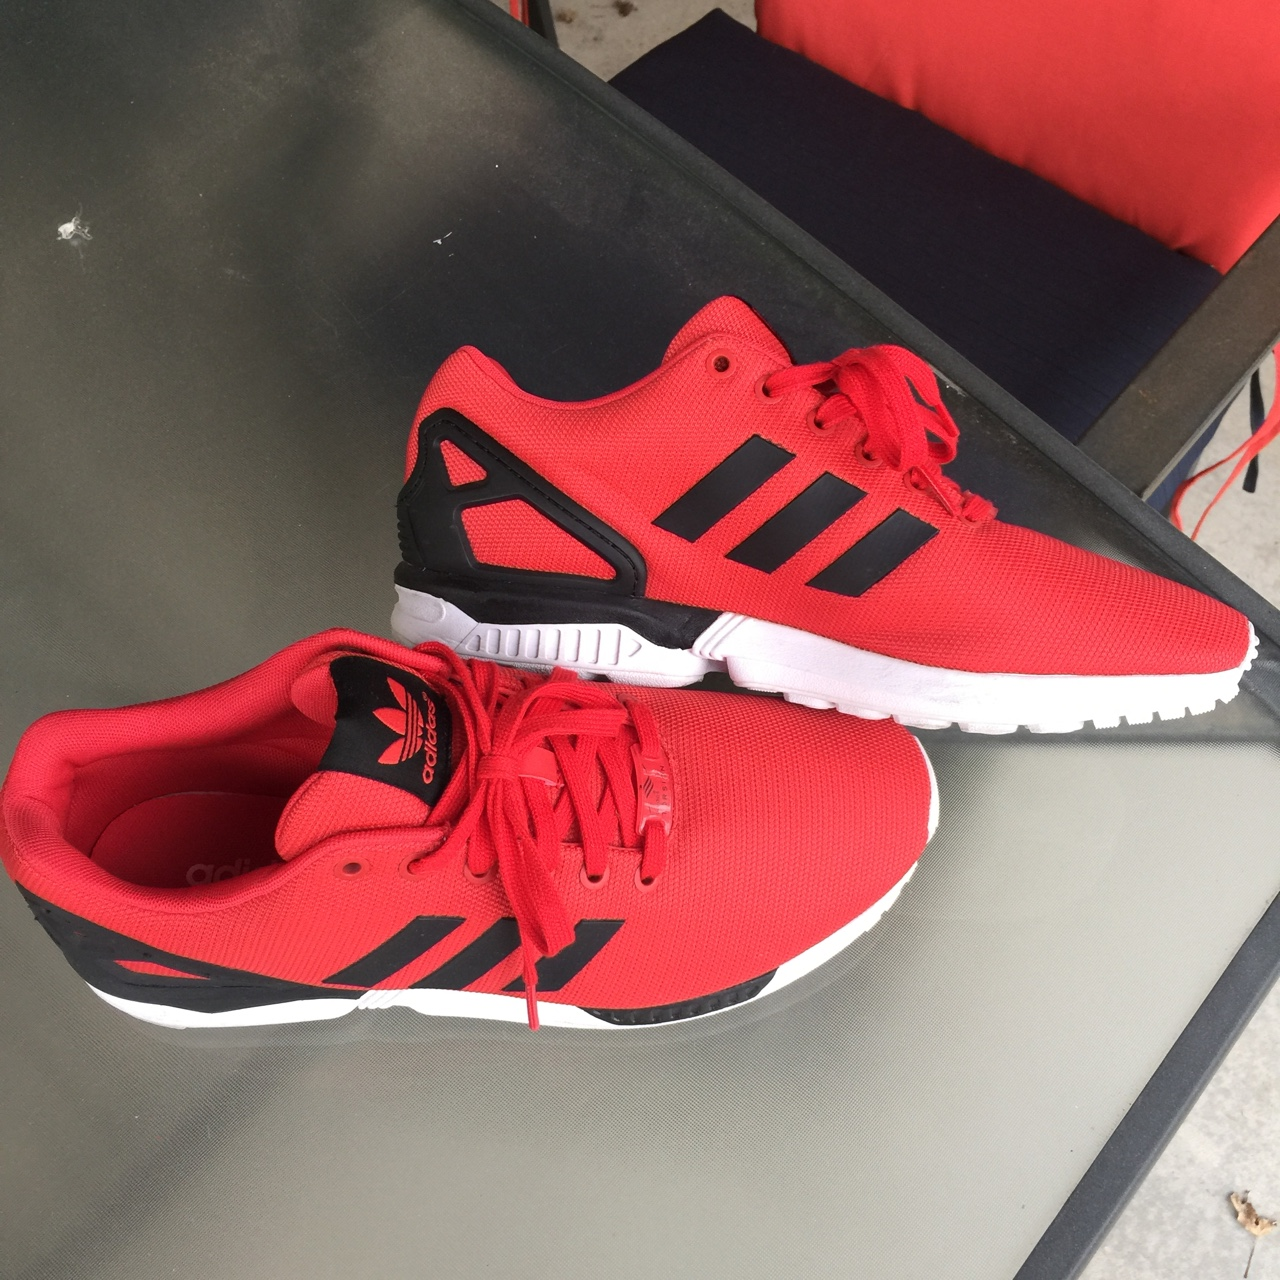 huge discount cceb1 344b4 RED #ADIDAS ZX FLUX w/ ADIDAS TORSION 9/10 due to ...